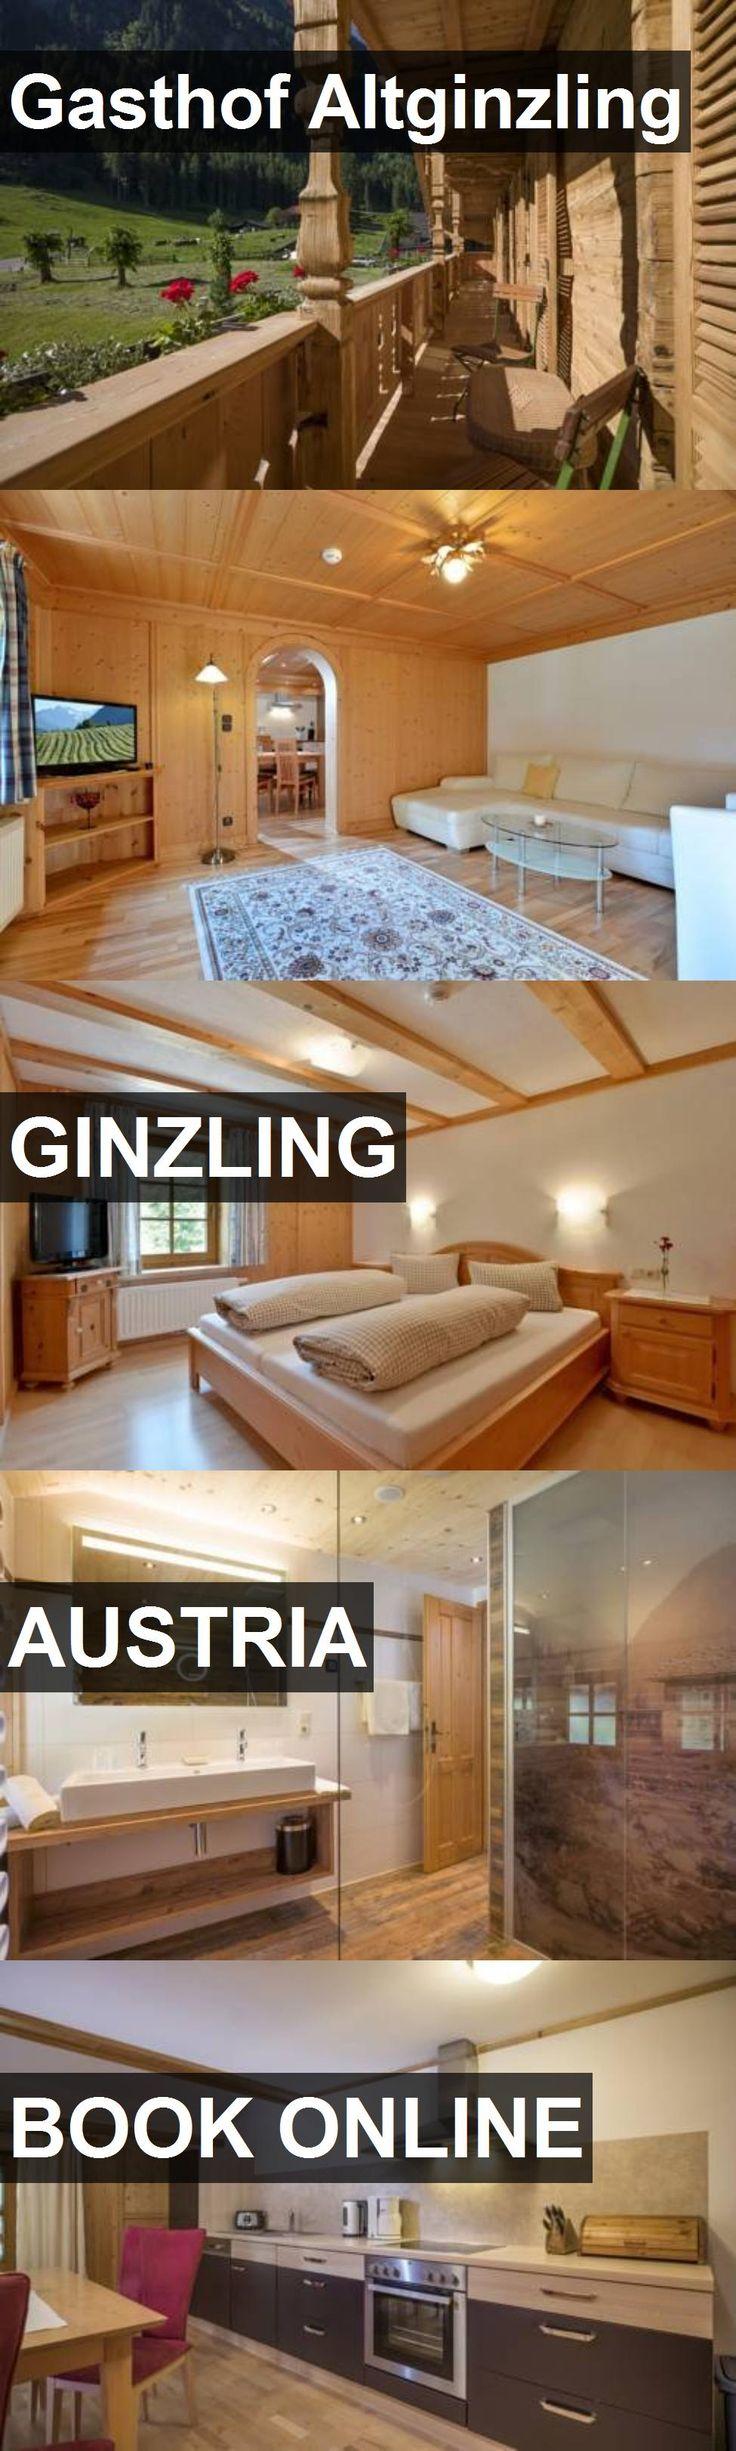 Hotel Gasthof Altginzling in Ginzling, Austria. For more information, photos, reviews and best prices please follow the link. #Austria #Ginzling #travel #vacation #hotel